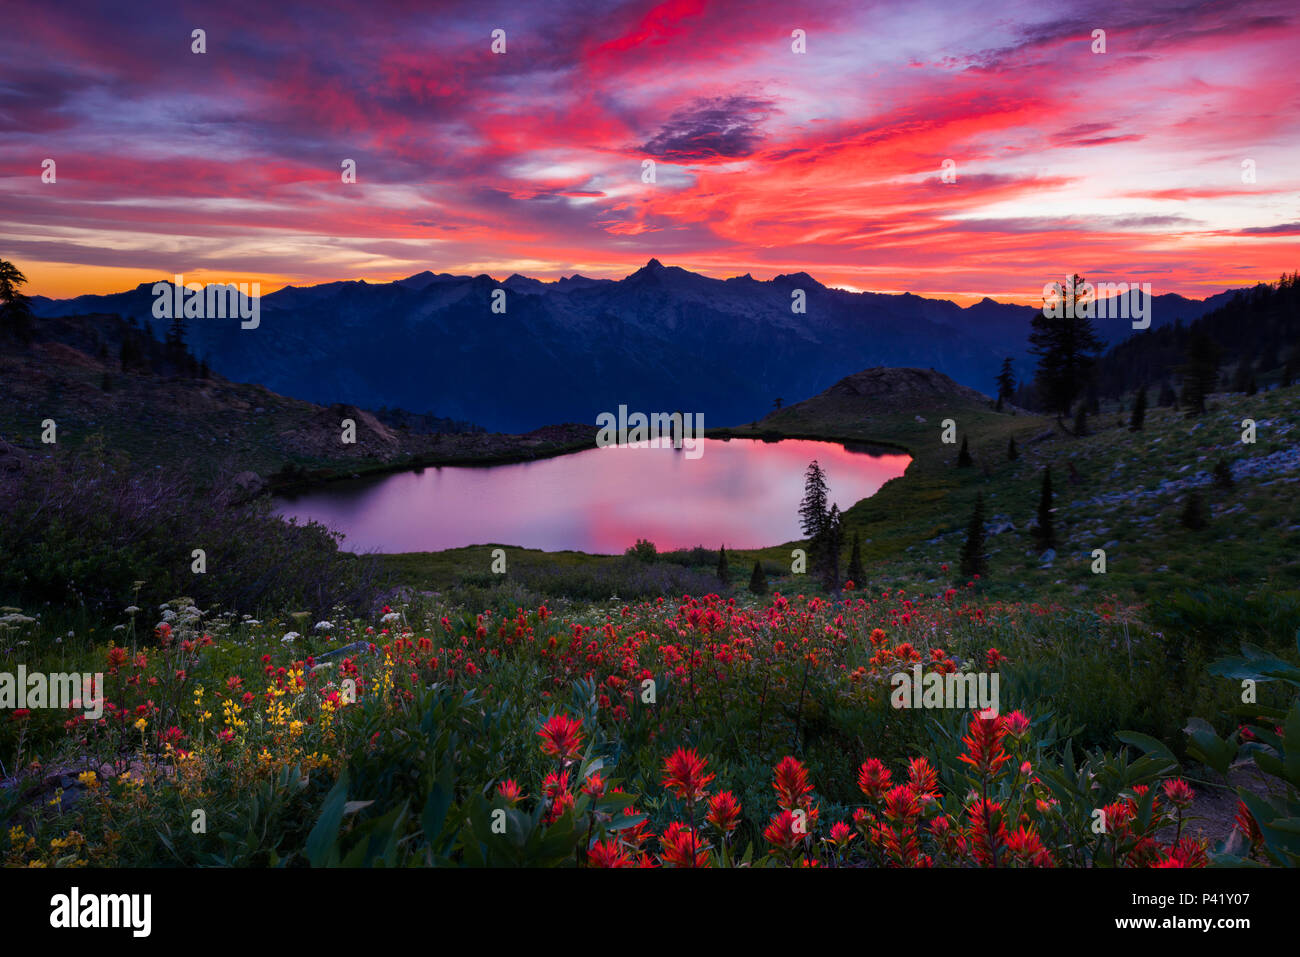 Amazing sunset over Diamond Lake in the Trinity Alps wilderness Four Lakes loop backpacking trail in California. - Stock Image